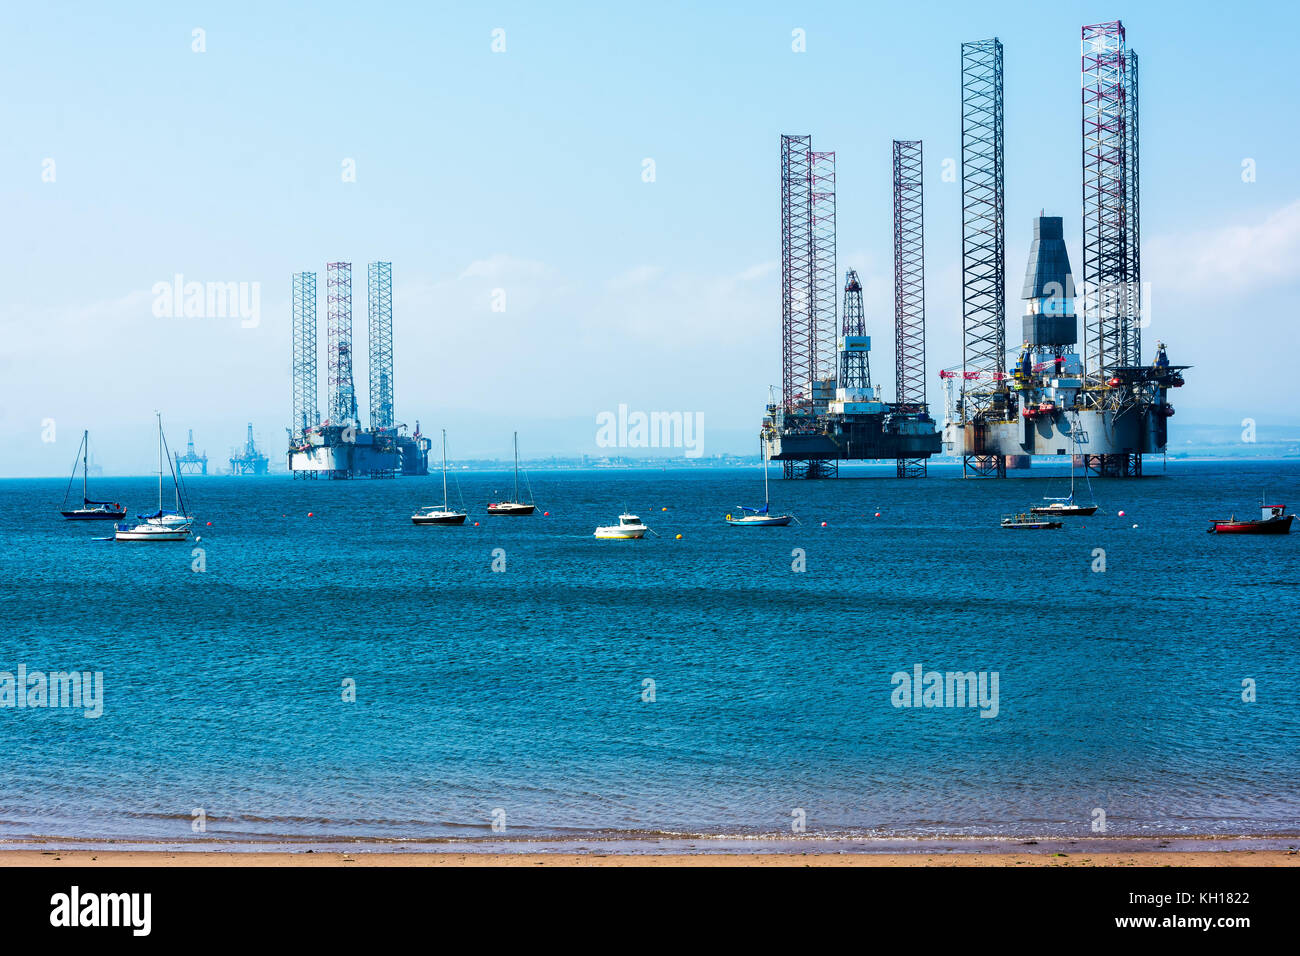 Oil Rigs in the Cromarty Firth, Scotland, United Kingdom - Stock Image